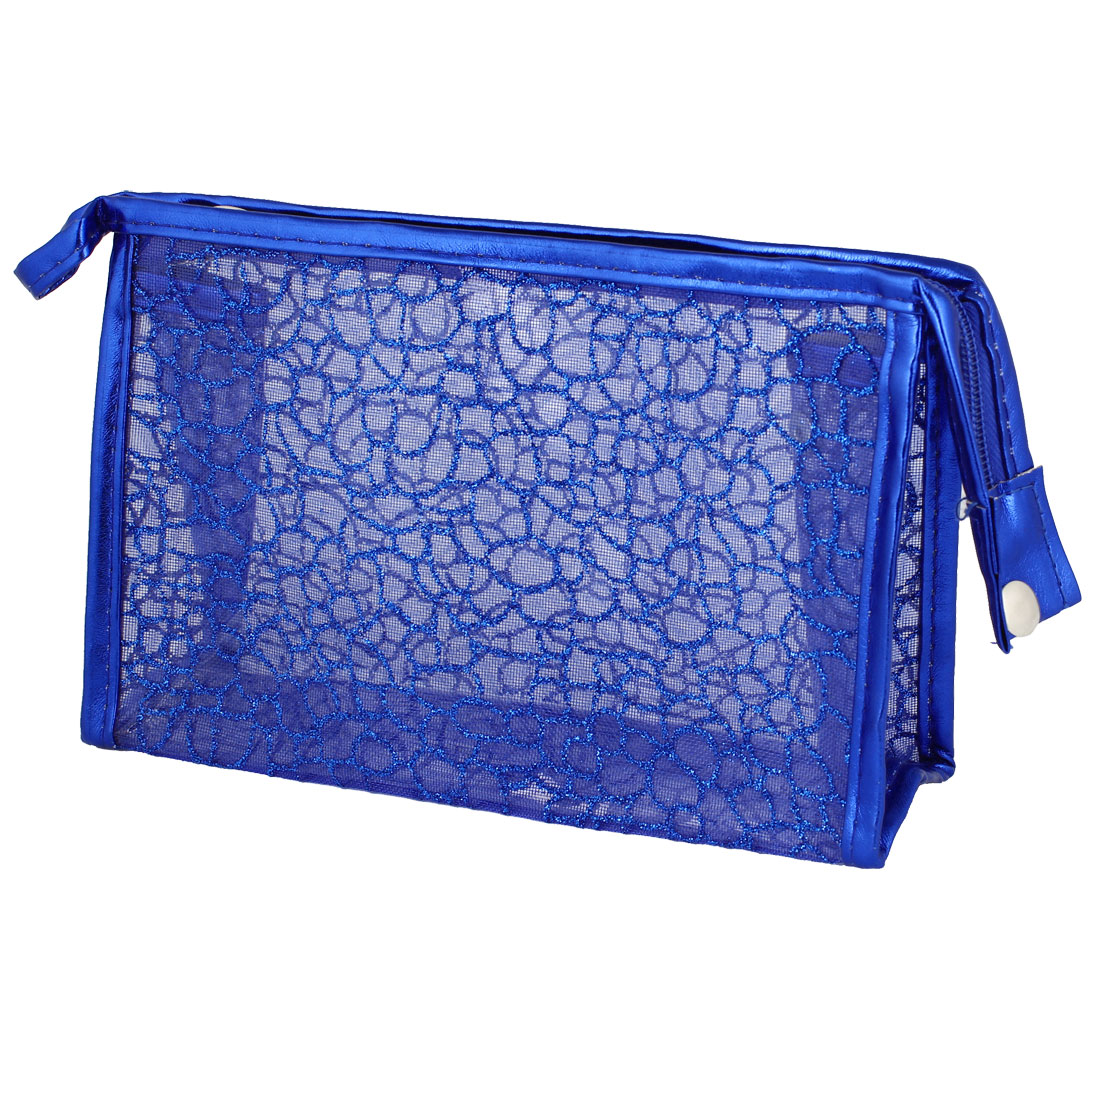 Dark Blue Faux Leather Frame Soft Plastic Lining Cosmetic Makeup Bag Pouch for Women